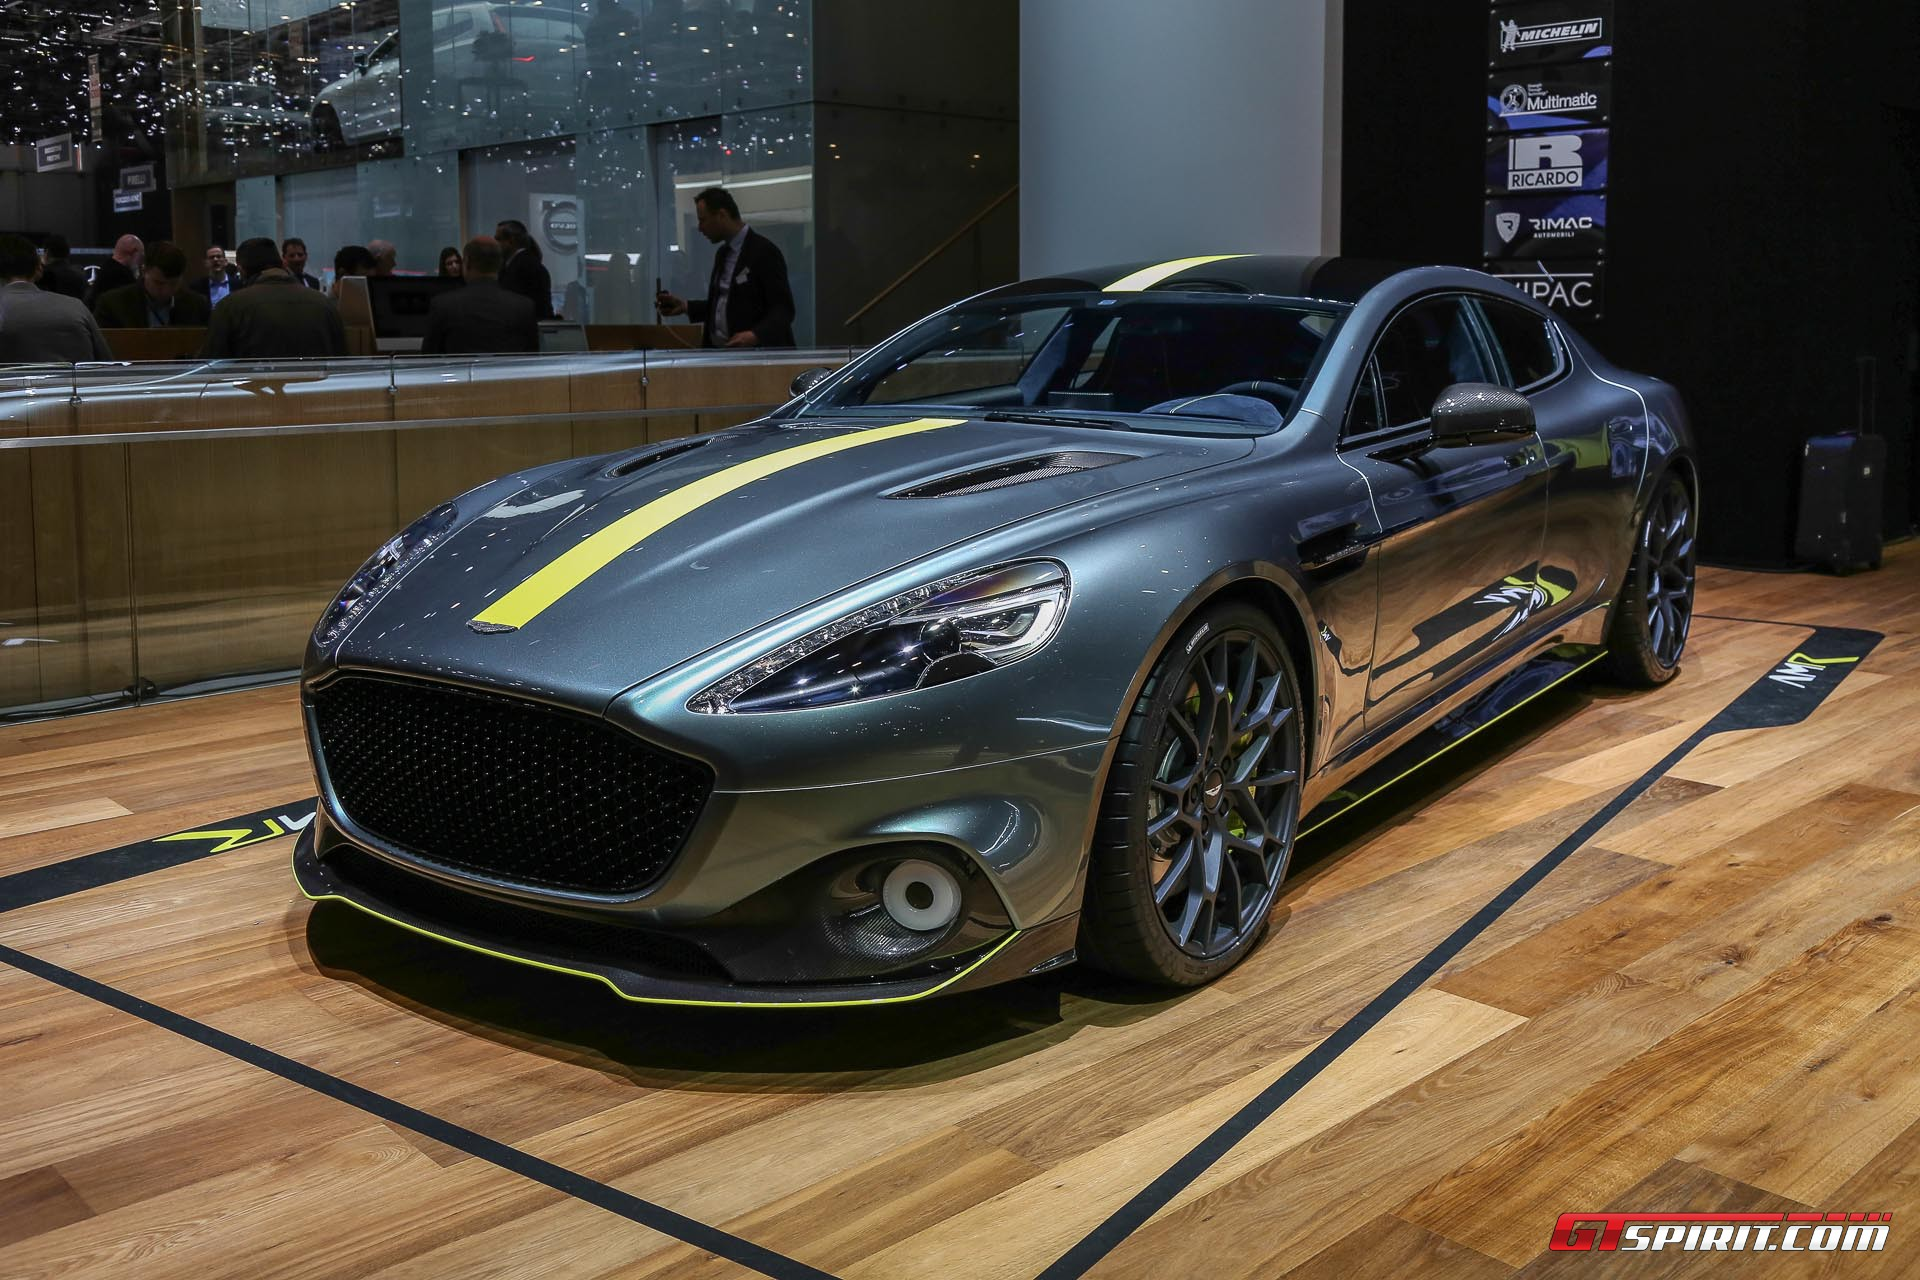 ... Aston Martin To Launch Two New Cars Per Year. Supercar ...